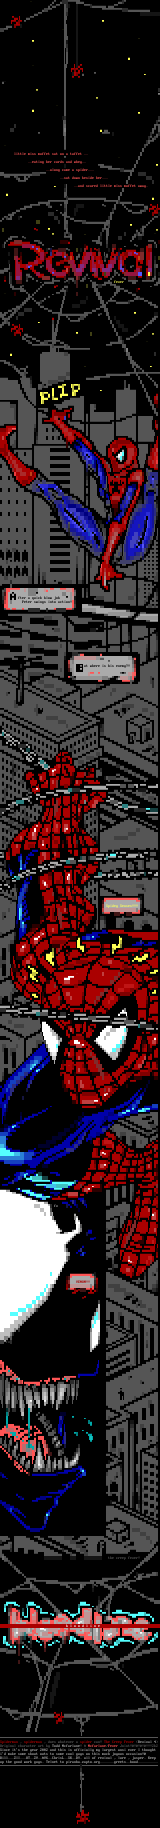 spider man by fever